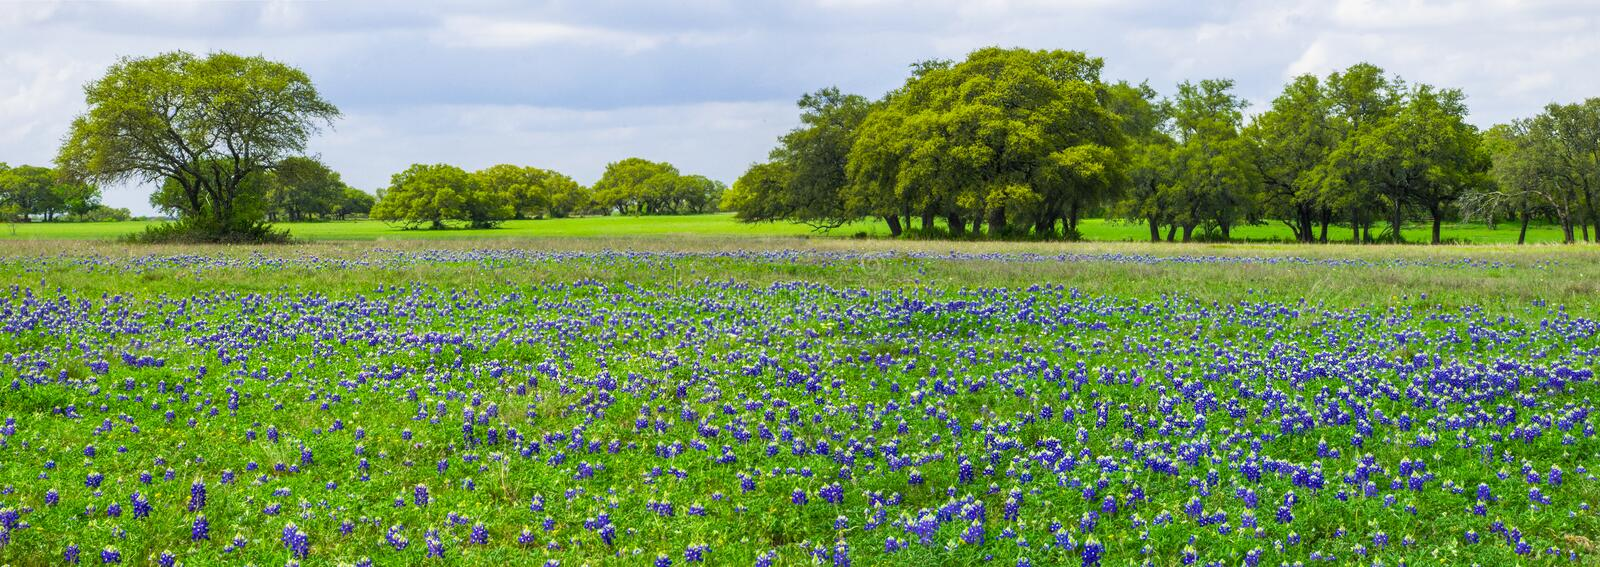 Texas Bluebonnets Panorama photo stock